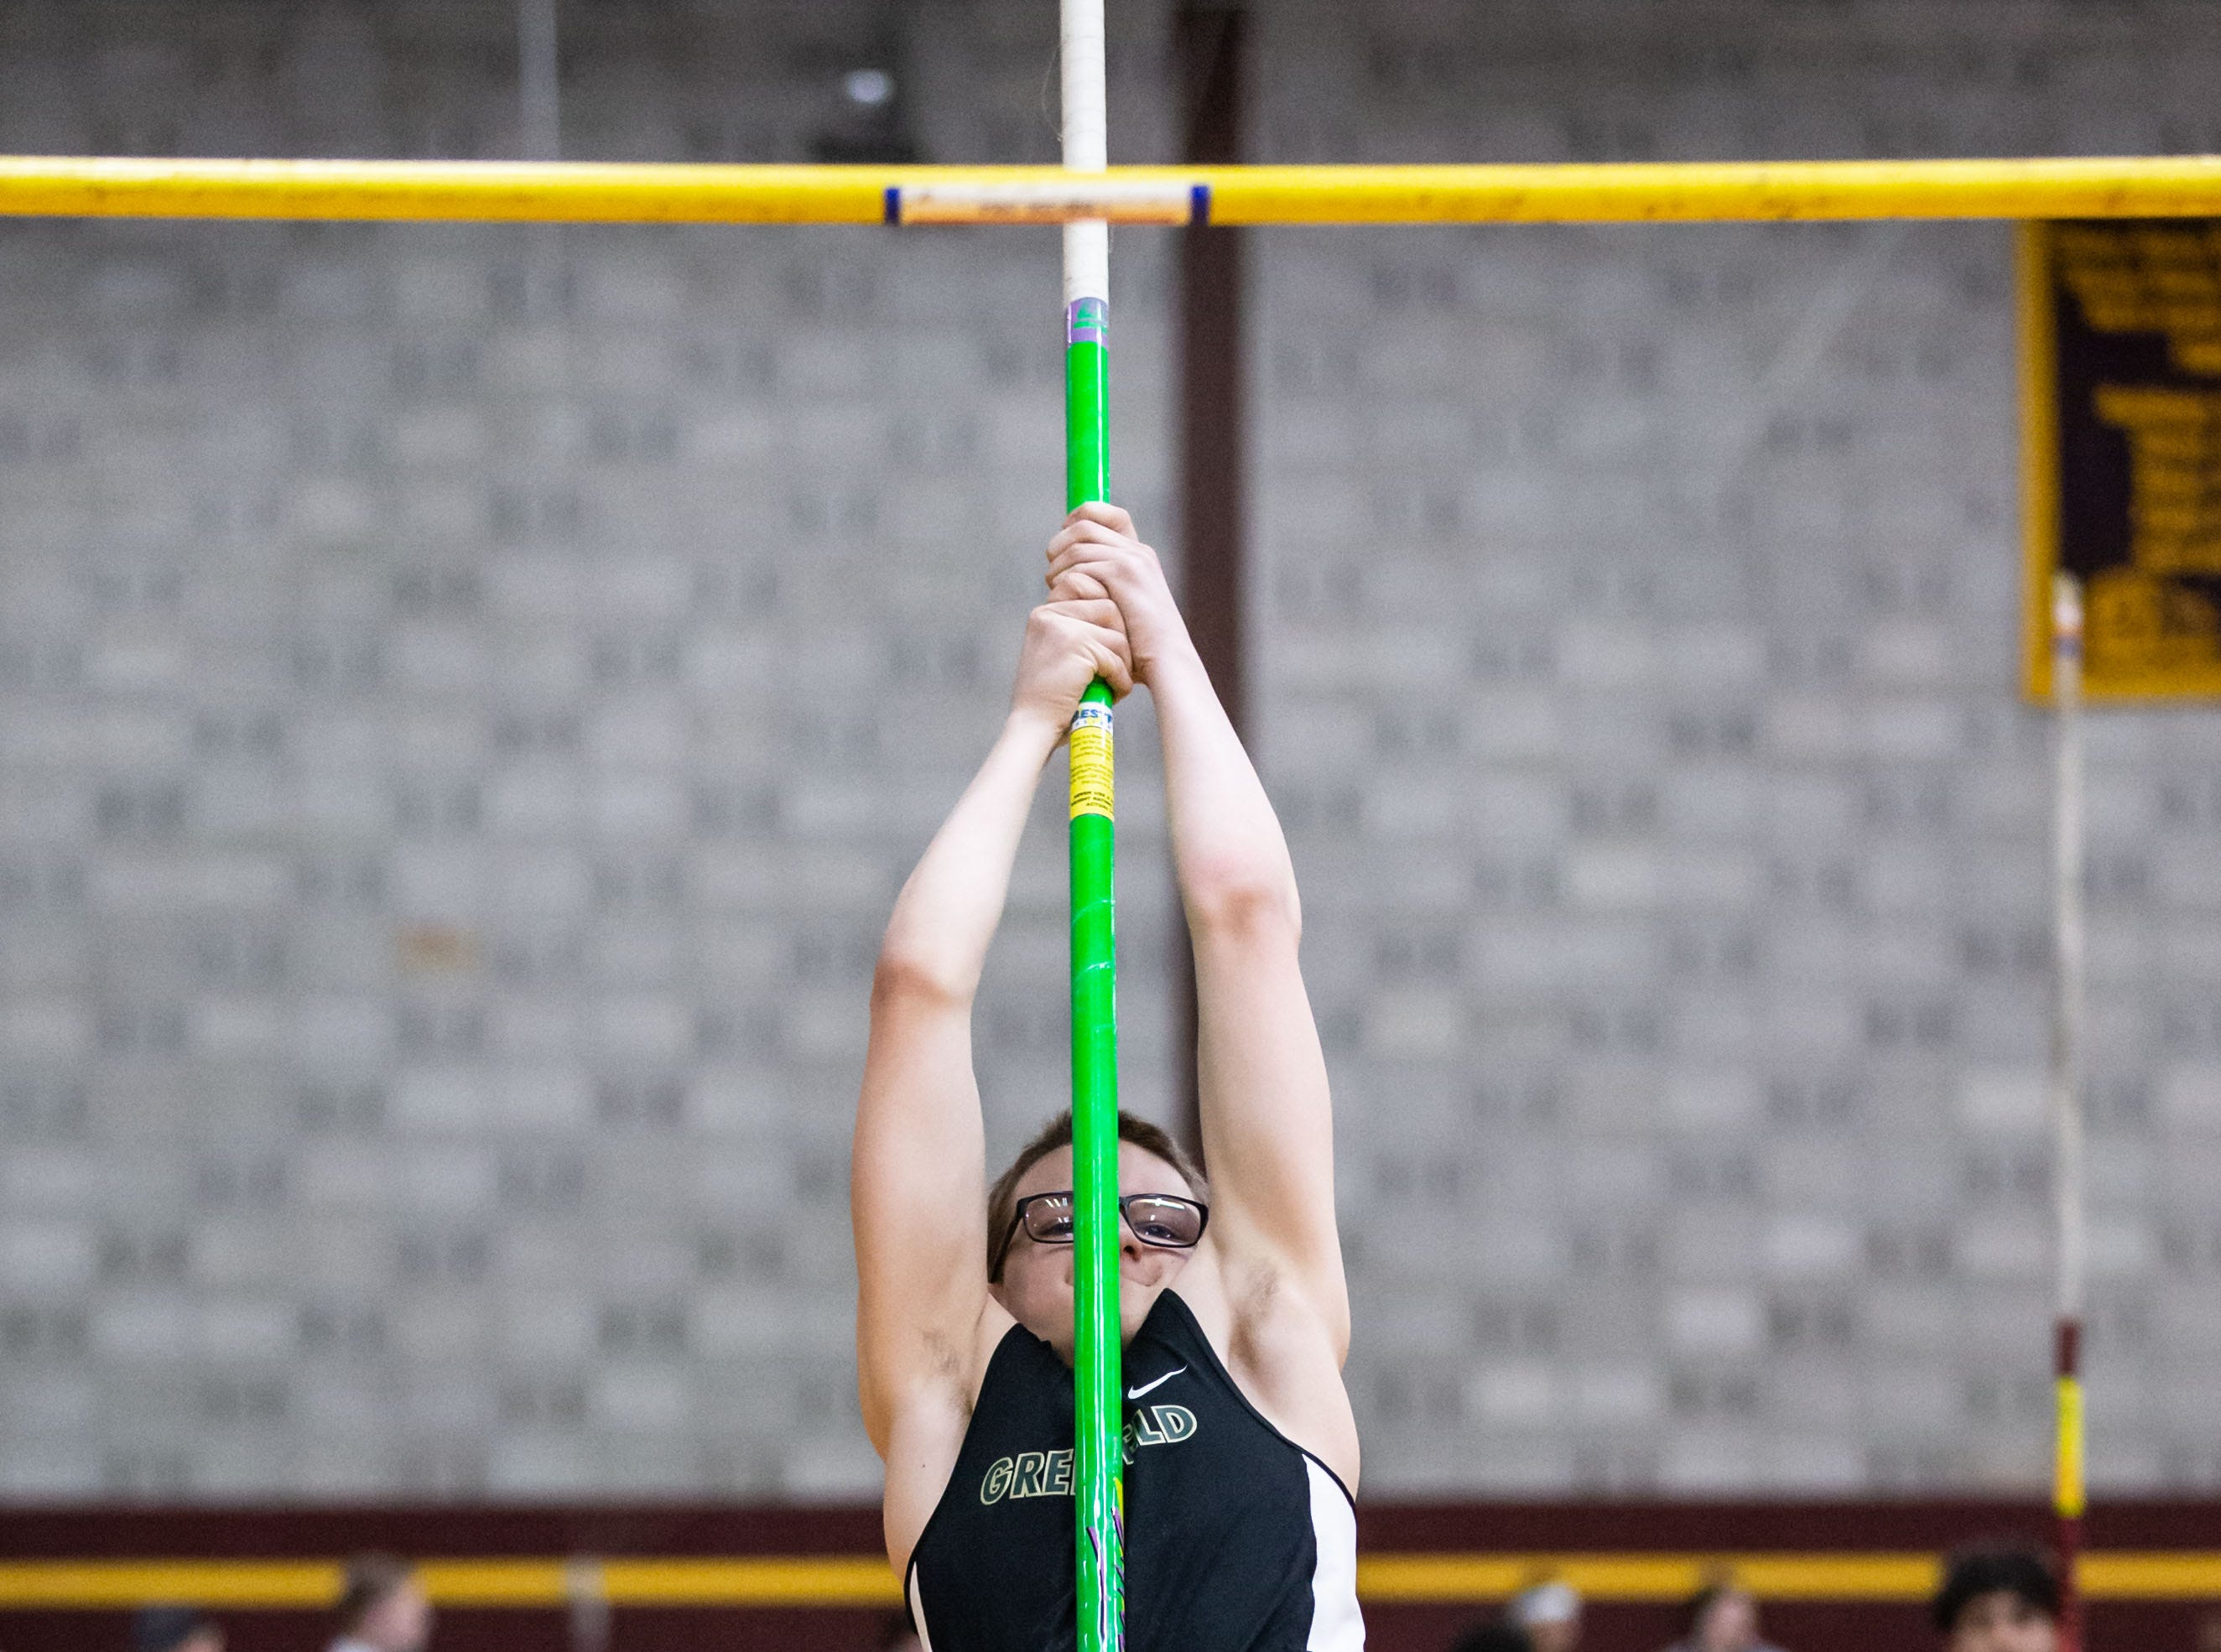 Greenfield's Zackery Mrnik competes on the pole vault at the Reinhard Bulldog Relays hosted by West Allis Central on Friday, March 15, 2019.